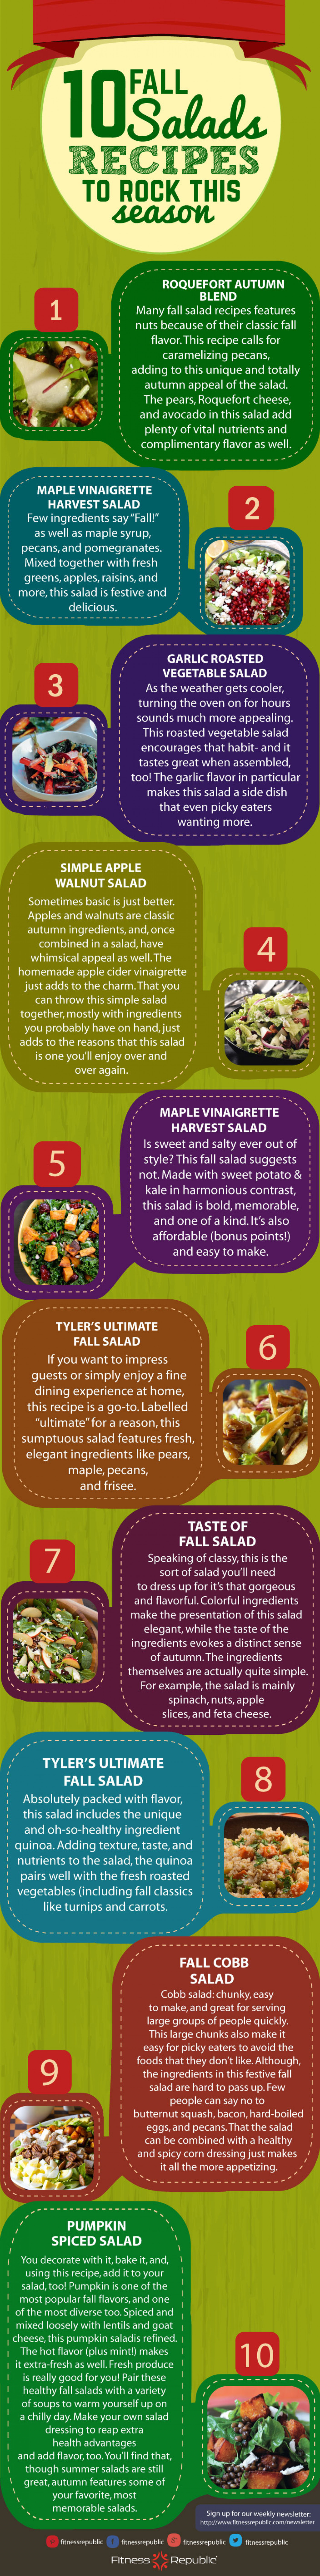 10 Easy and Healthy Fall Salads Infographic